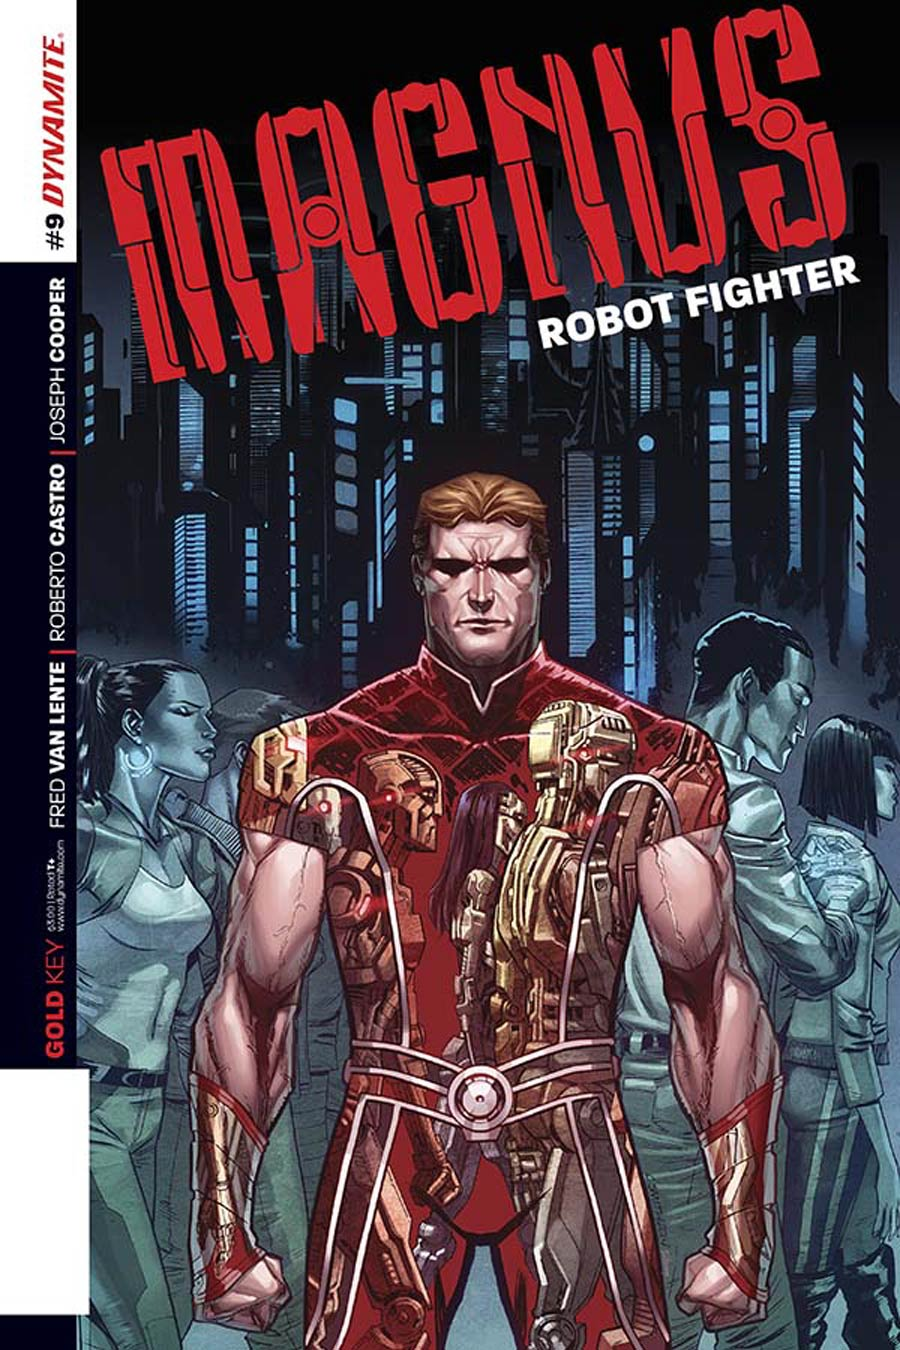 Magnus Robot Fighter Vol 4 #9 Cover B Variant Cory Smith Subscription Cover